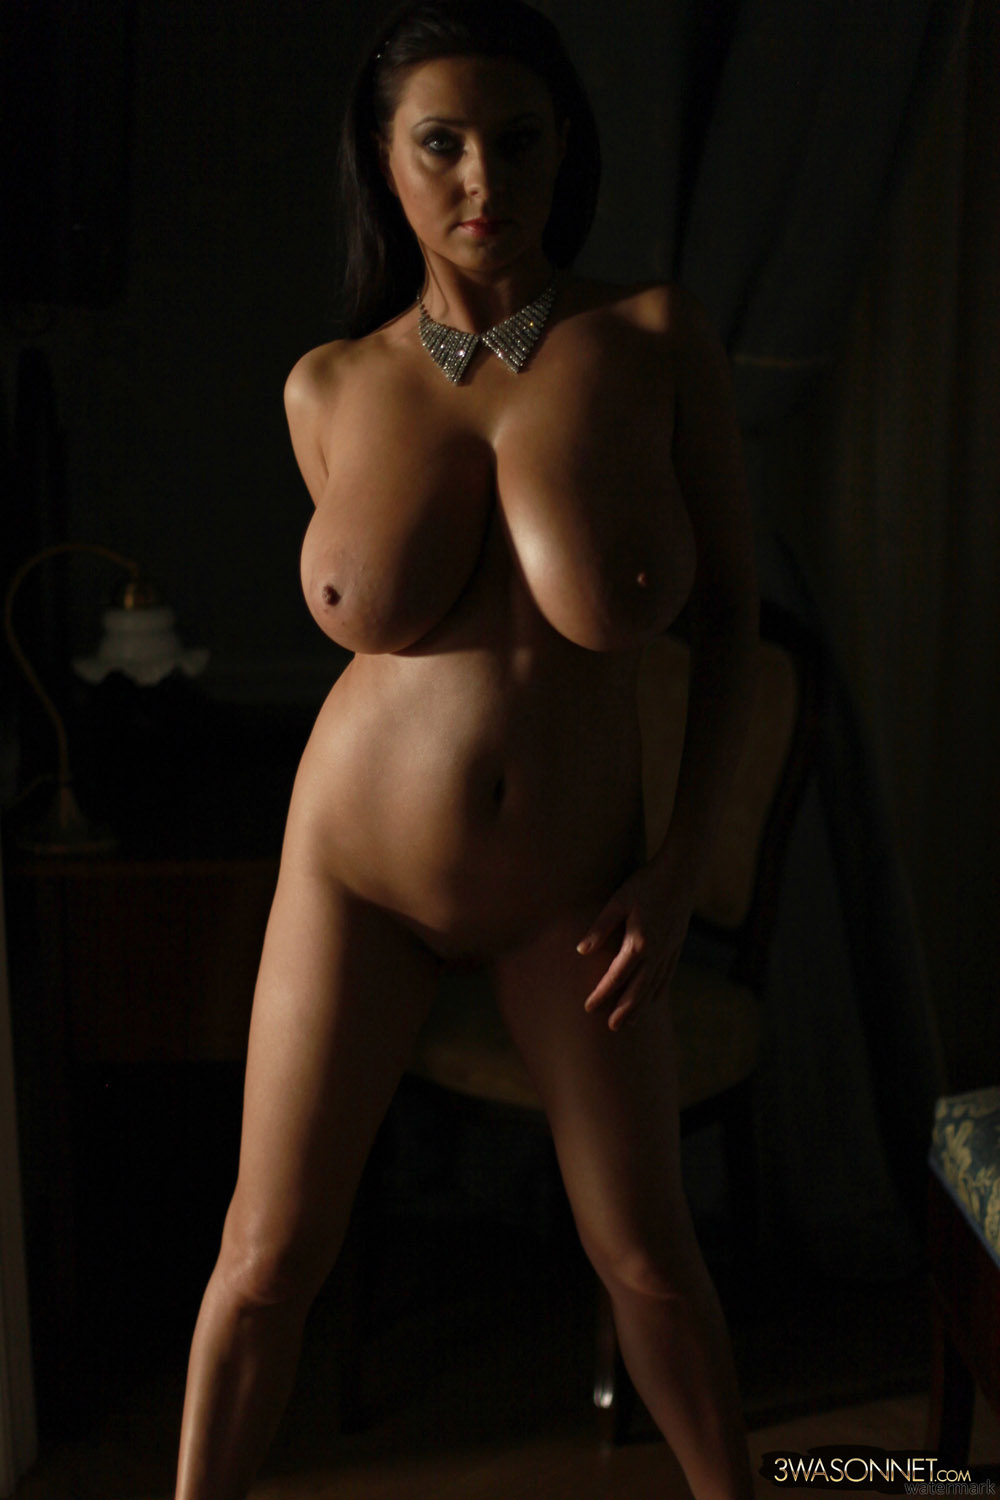 Very whore ewa sonnet ass and fat